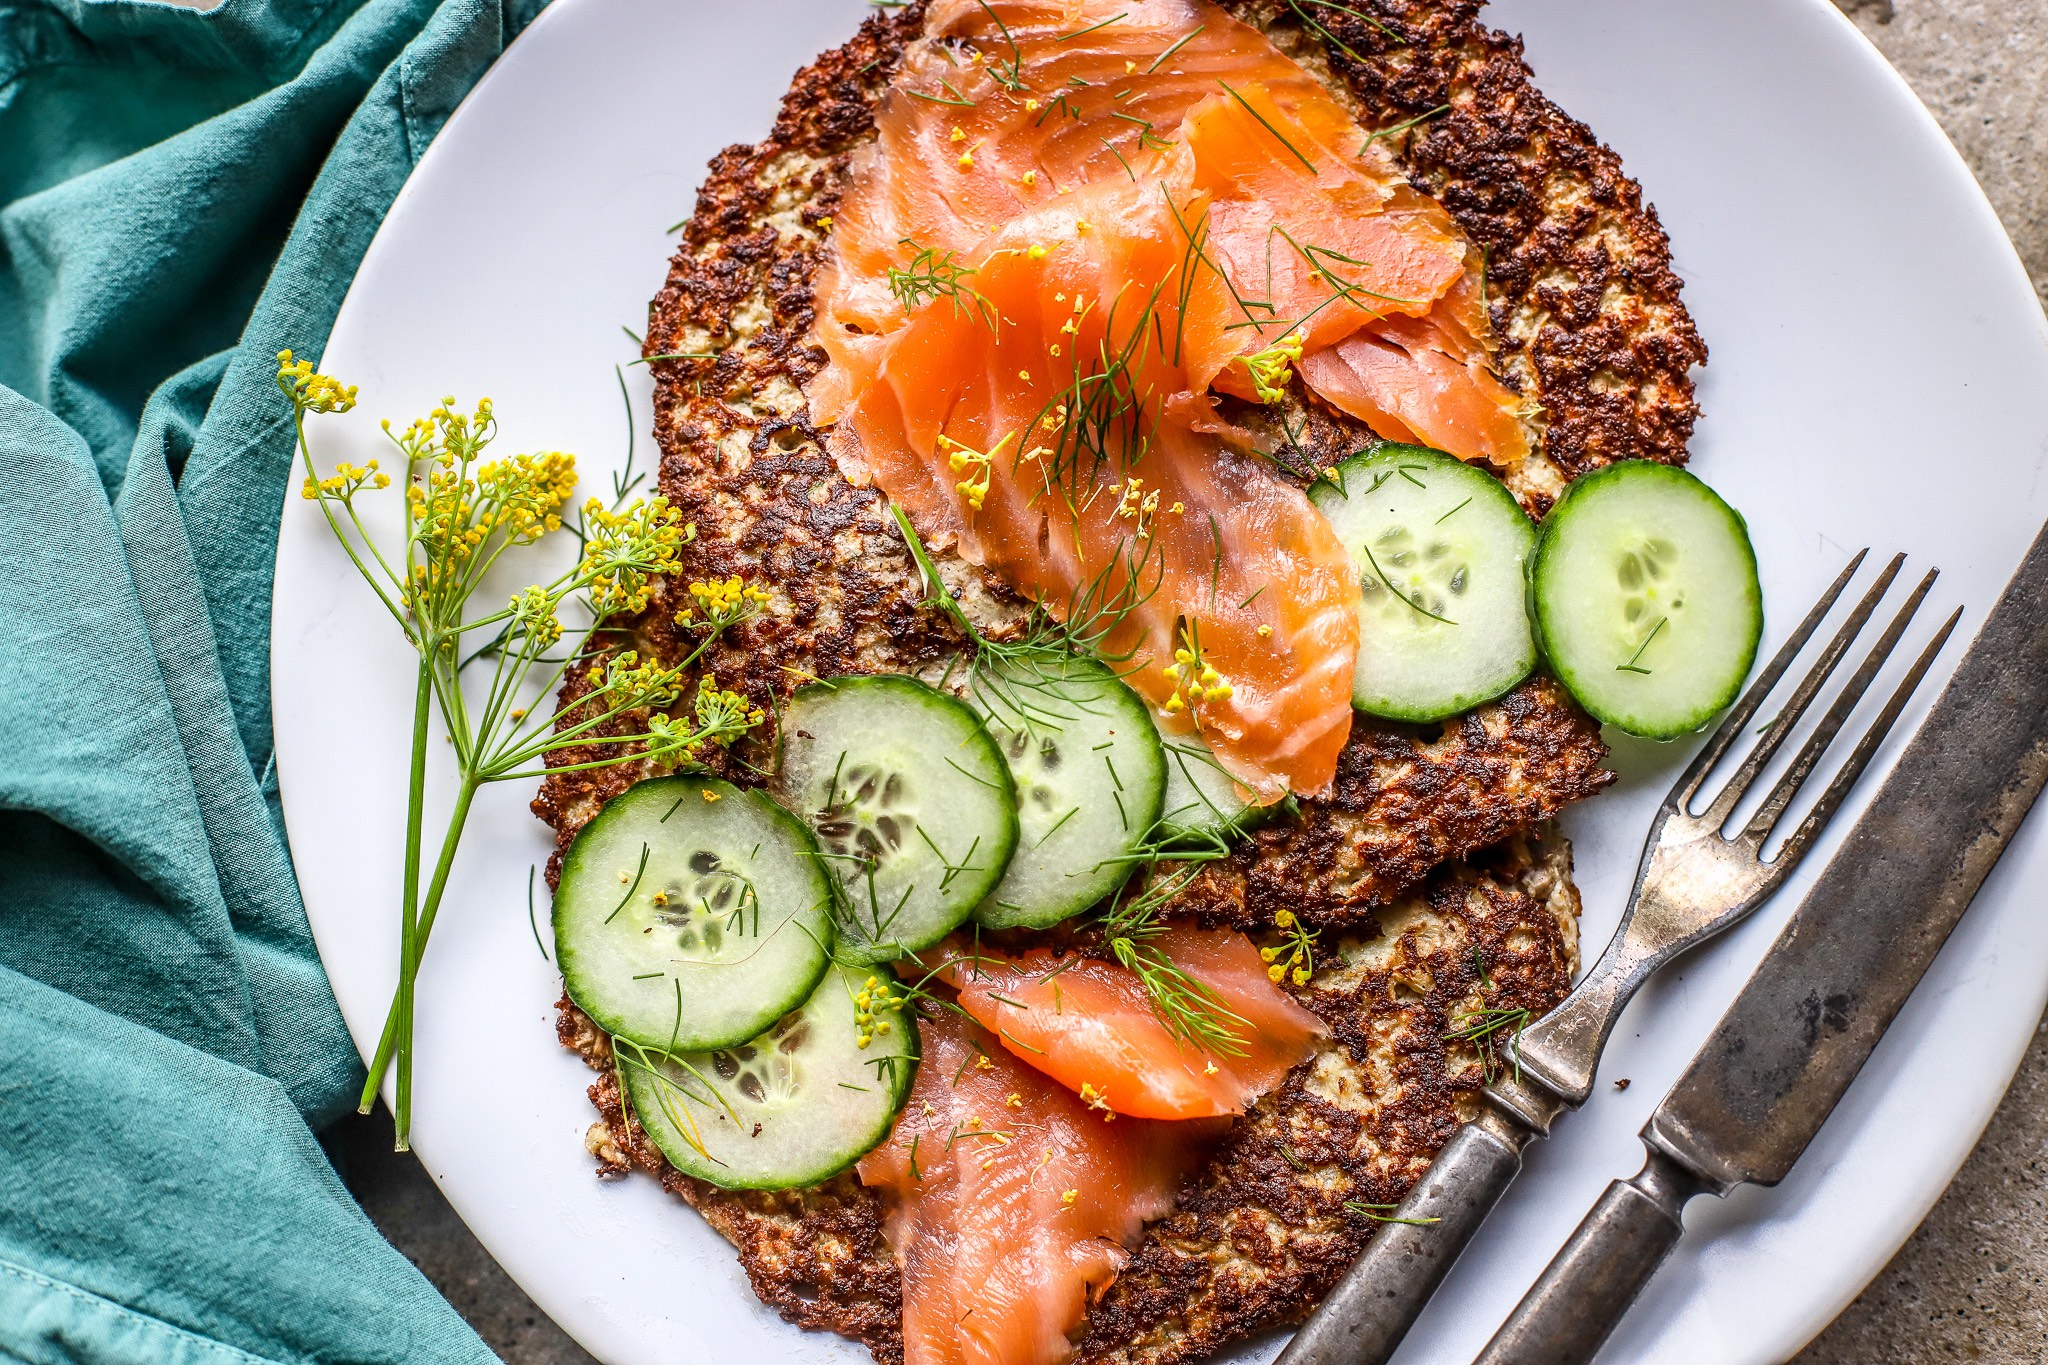 scandinavian cauliflower rosti with smoked salmon and cucumber slices with pollen close shot on white plate